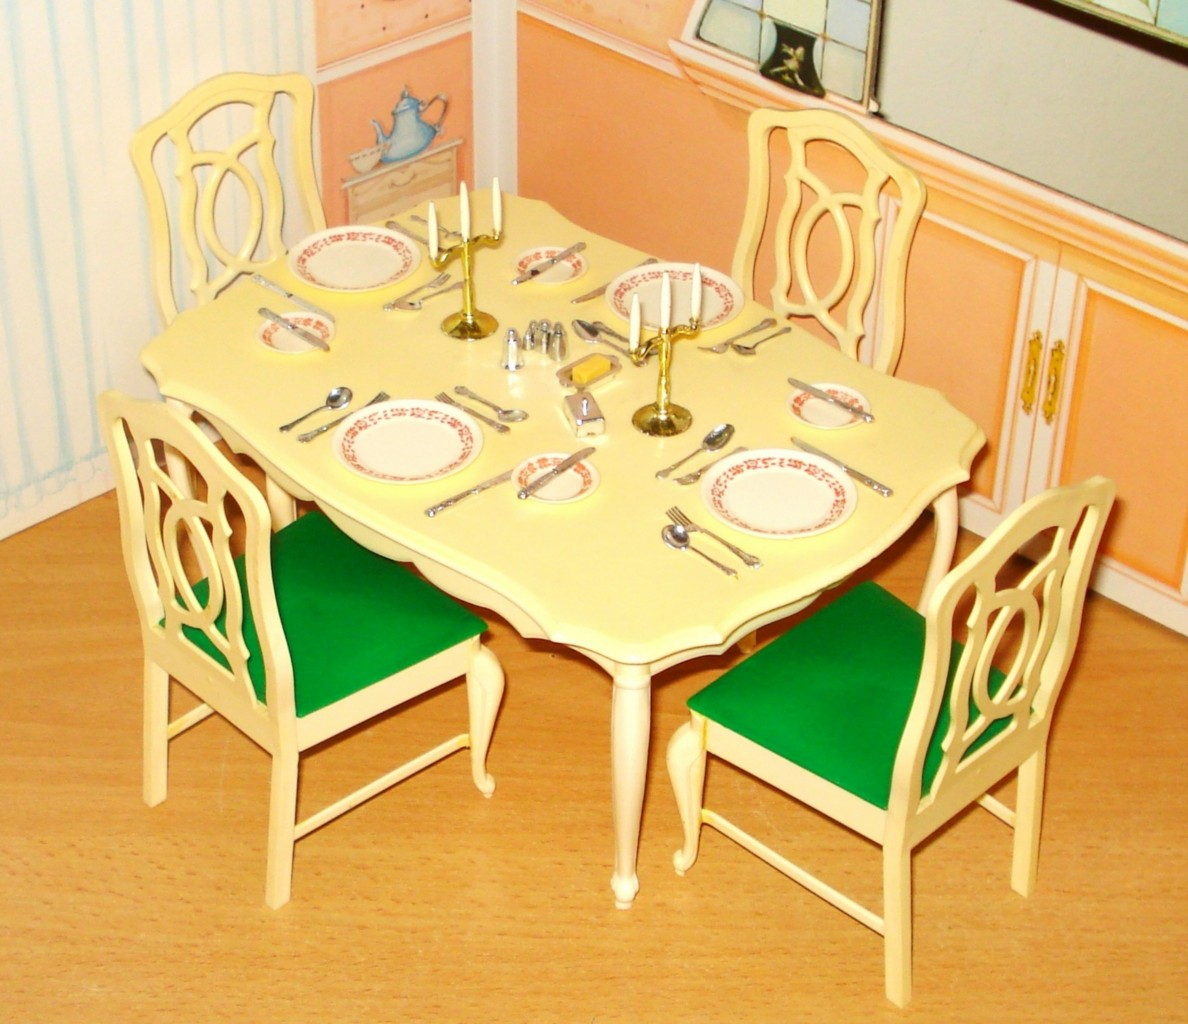 Sindy 1980 Scenesetter Dining Table Chairs With Original Accessories Ebay